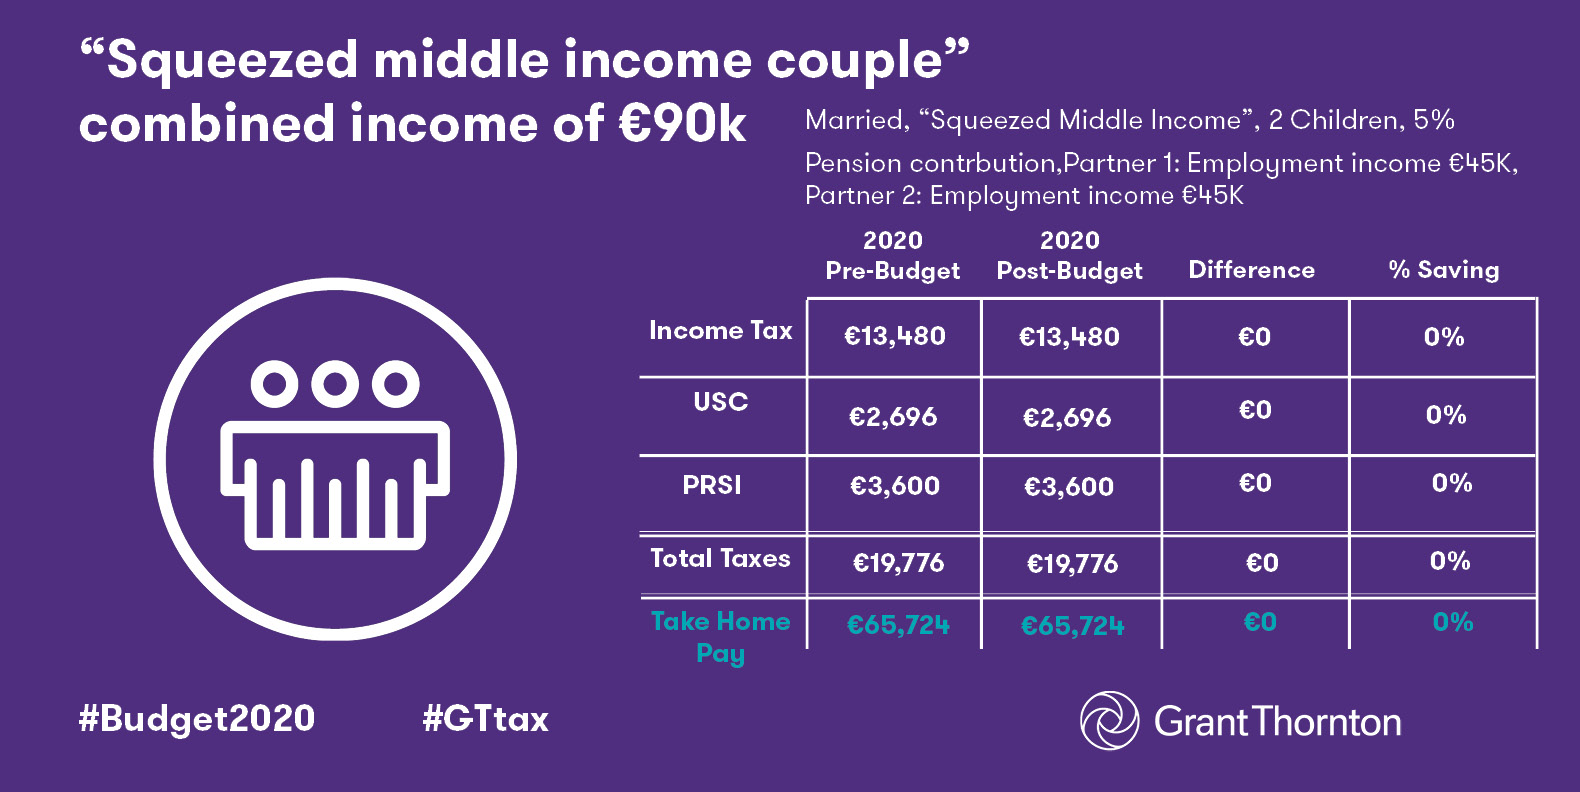 8. 'Squeezed middle income couple' combined income of €90k2020.jpg